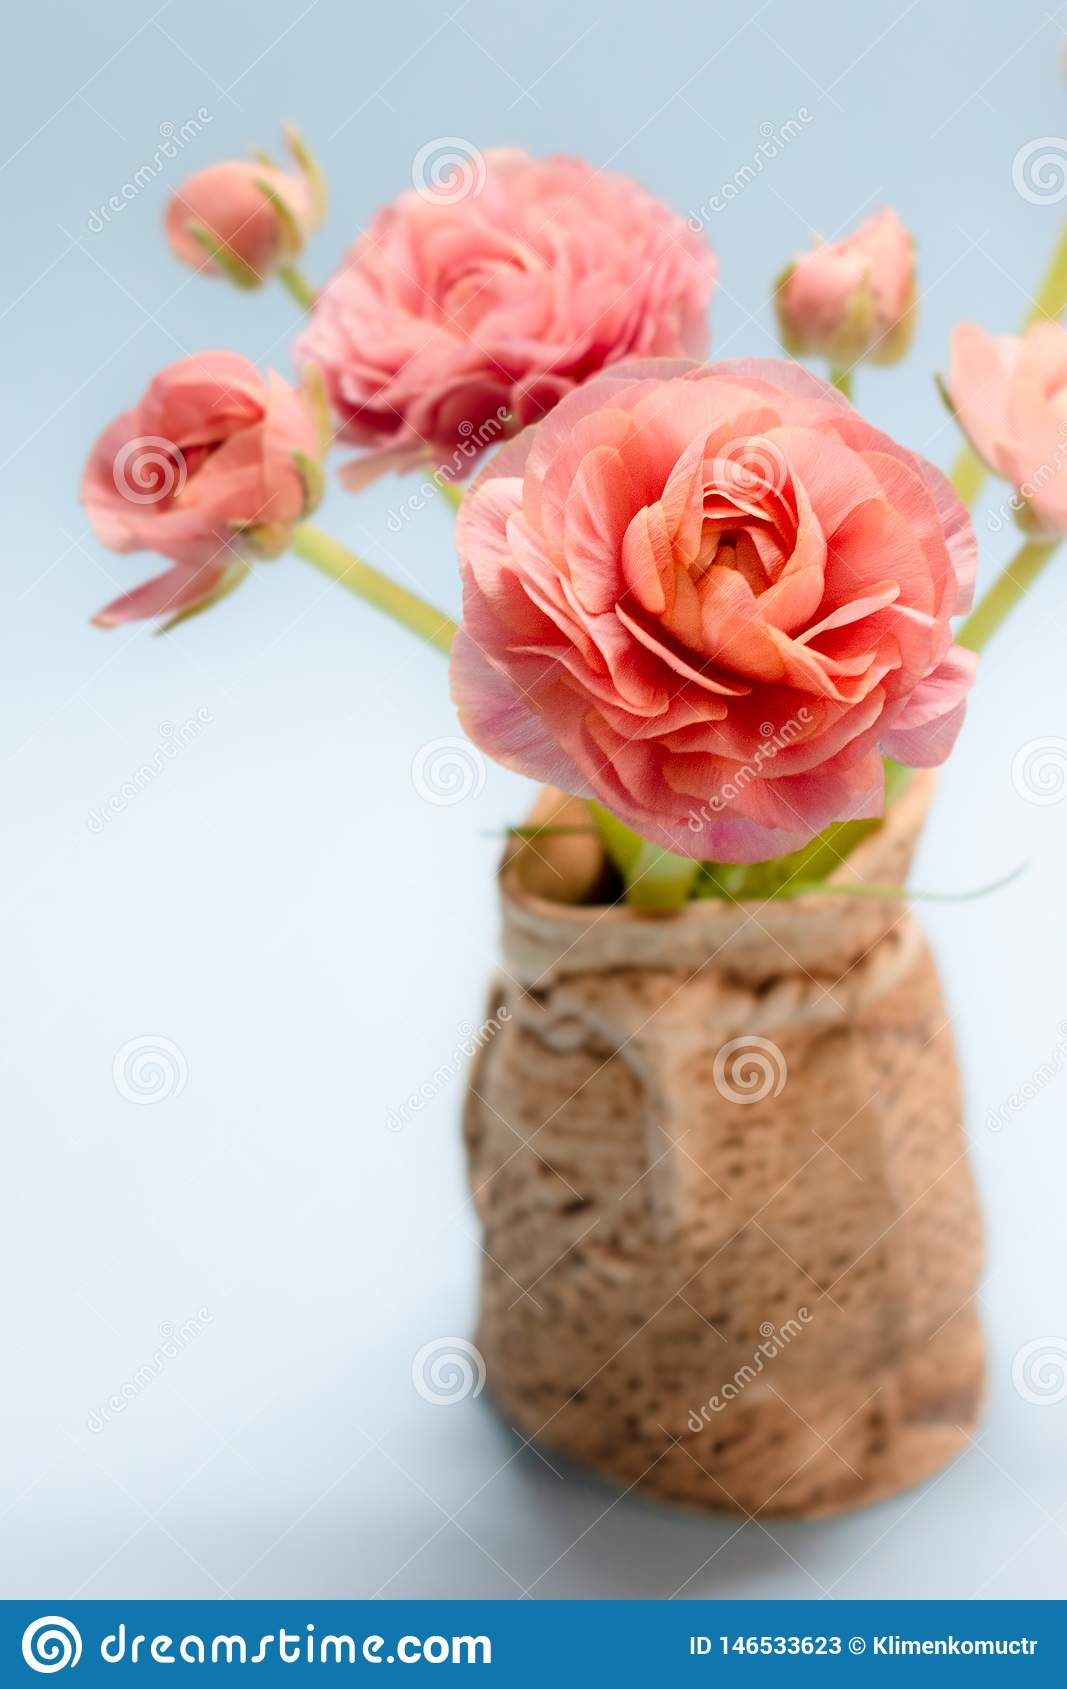 Cute bouquet of gentle rose ranunculuses on a blue background